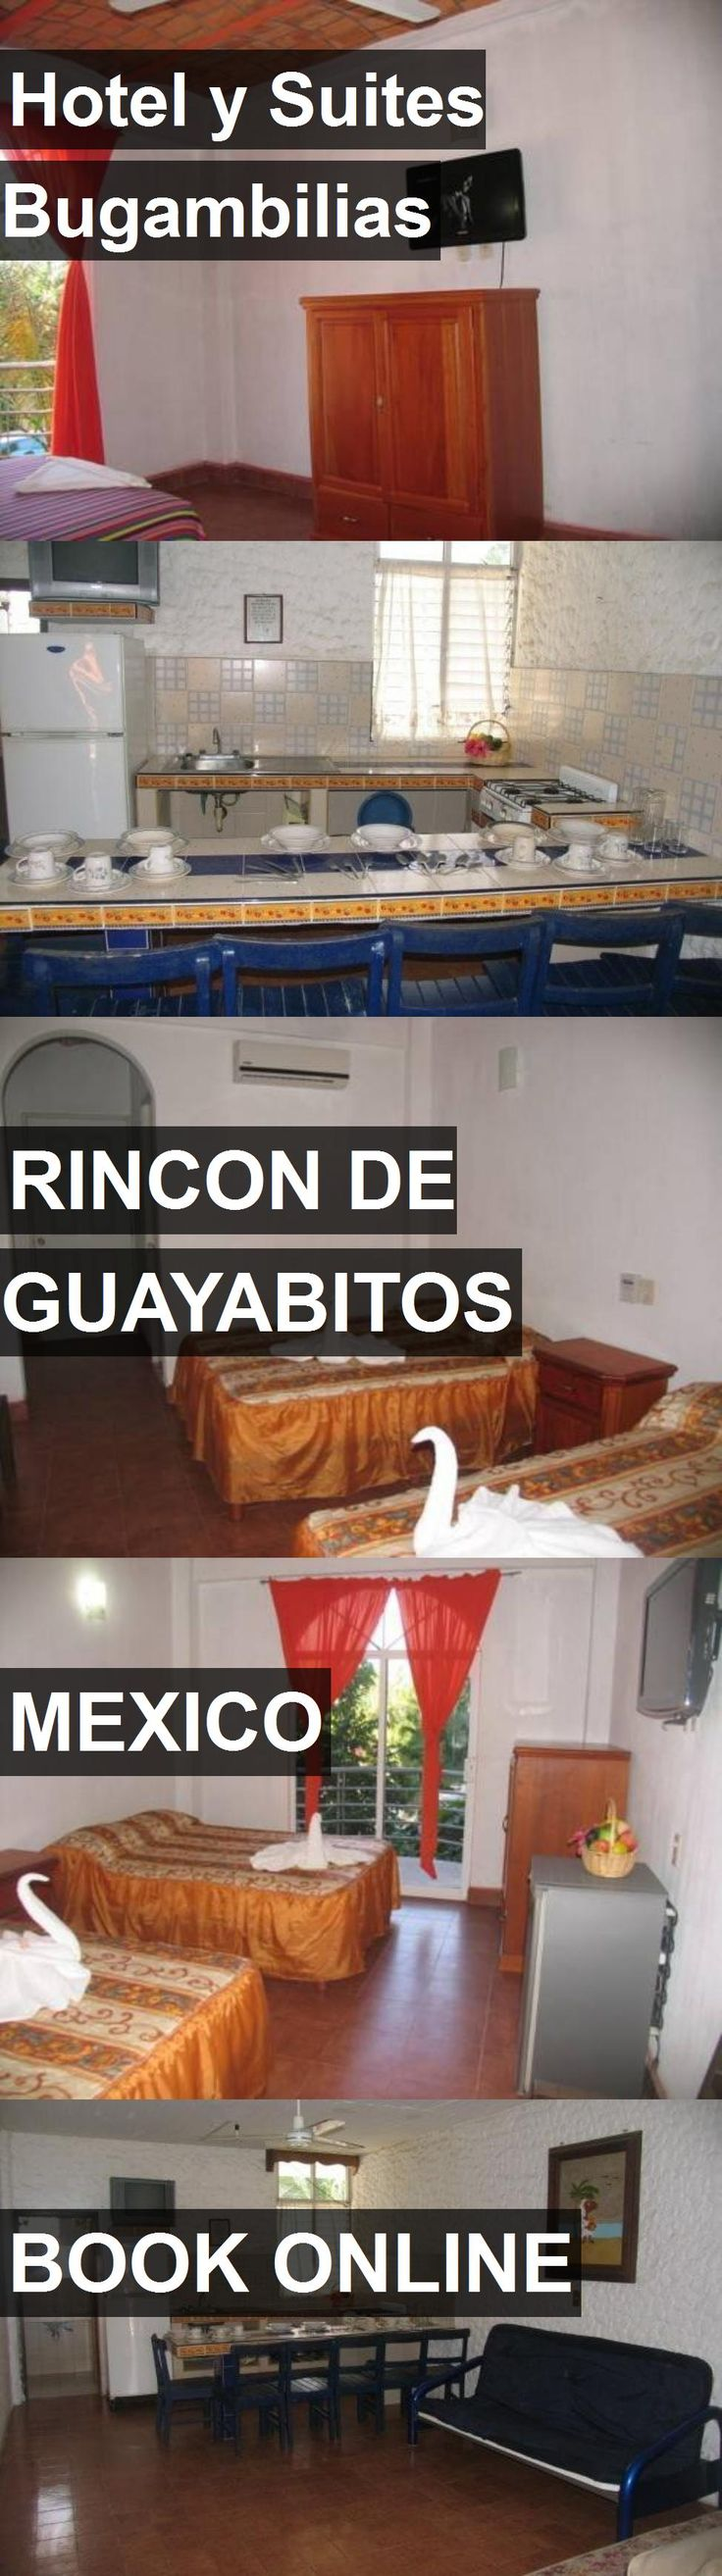 Hotel Hotel y Suites Bugambilias in Rincon de Guayabitos, Mexico. For more information, photos, reviews and best prices please follow the link. #Mexico #RincondeGuayabitos #HotelySuitesBugambilias #hotel #travel #vacation